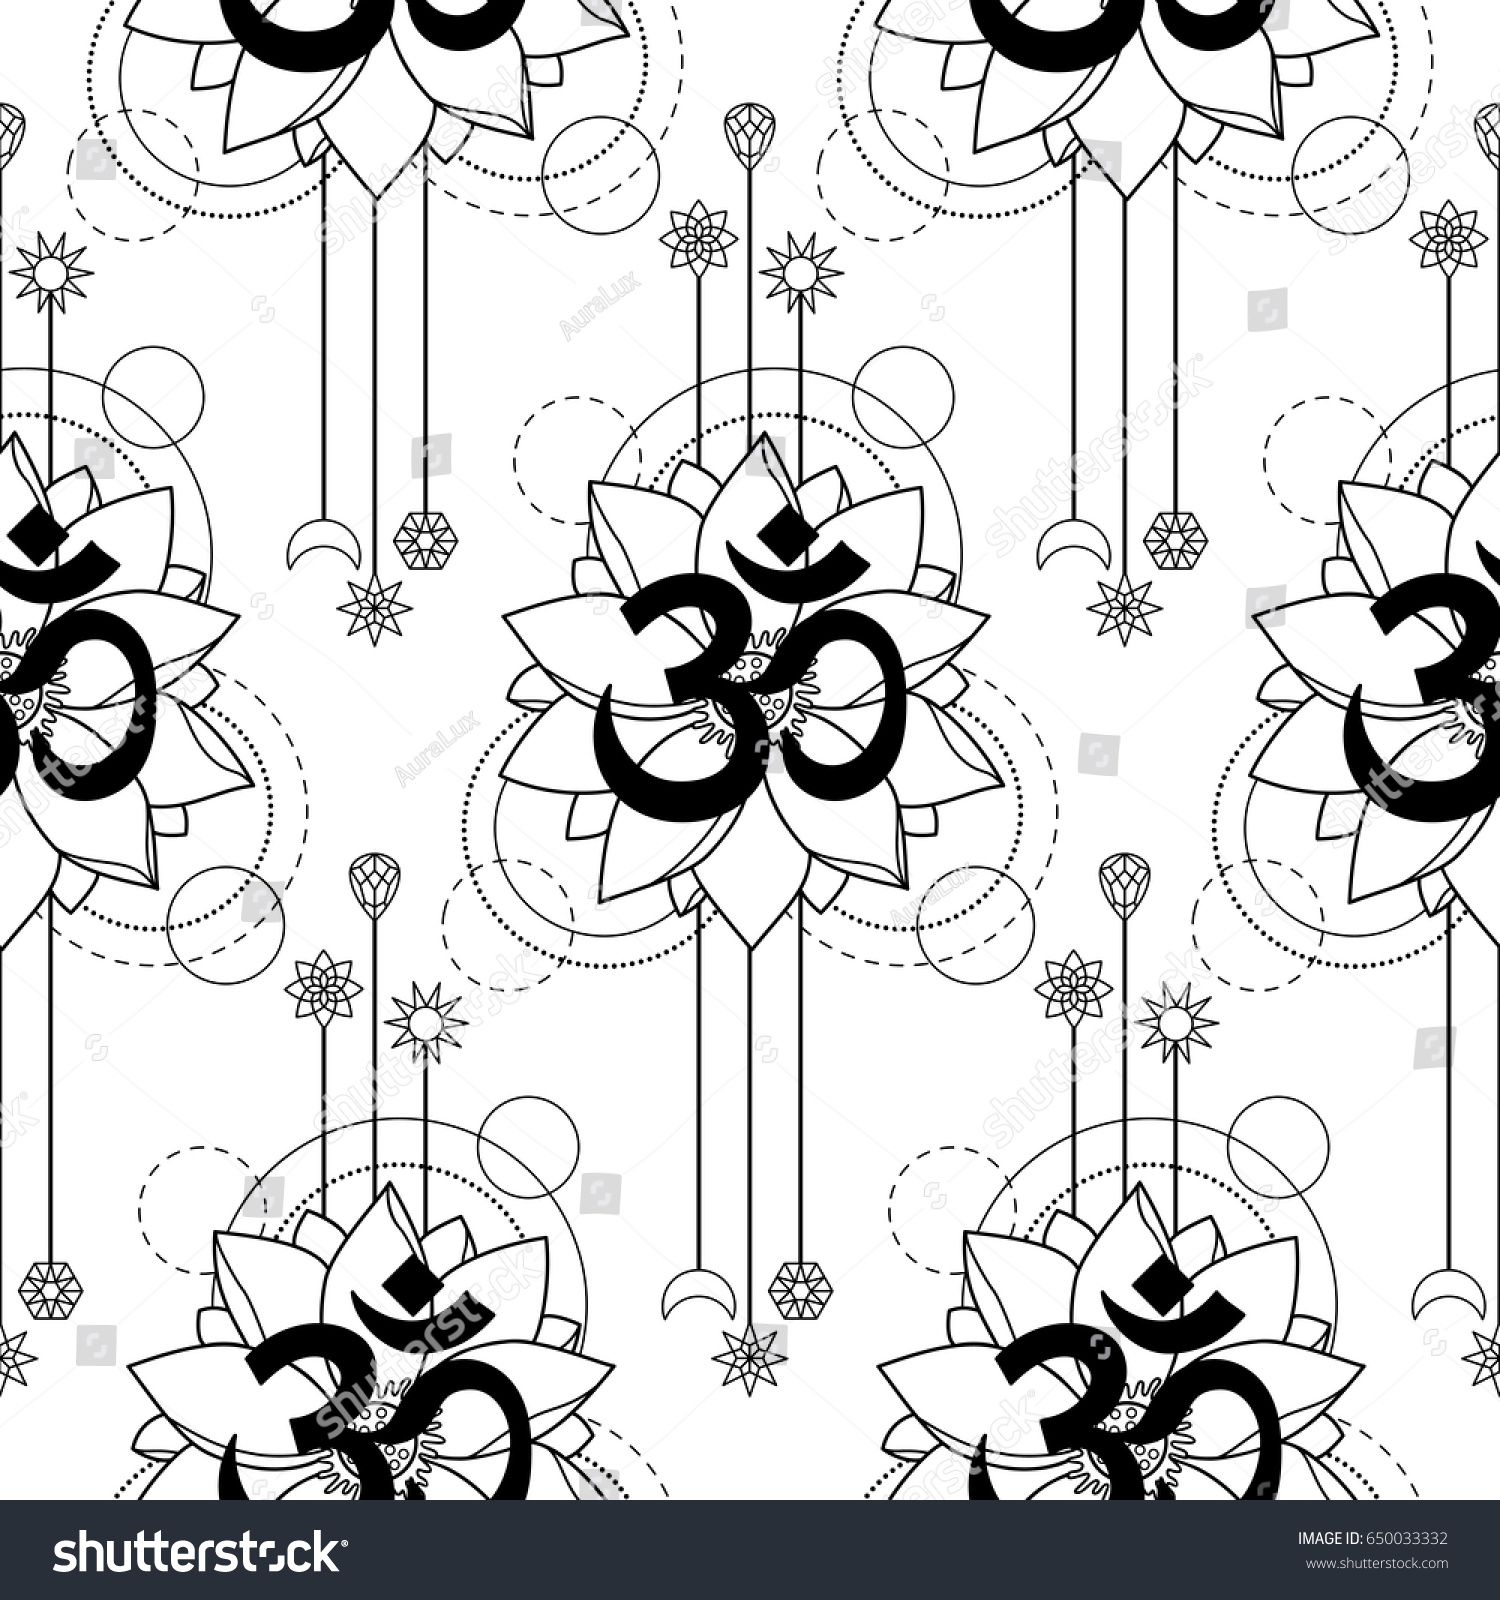 c6b86b696 Seamless pattern with mantra Om and lotus abstract composition on white  background. Modern tattoo,